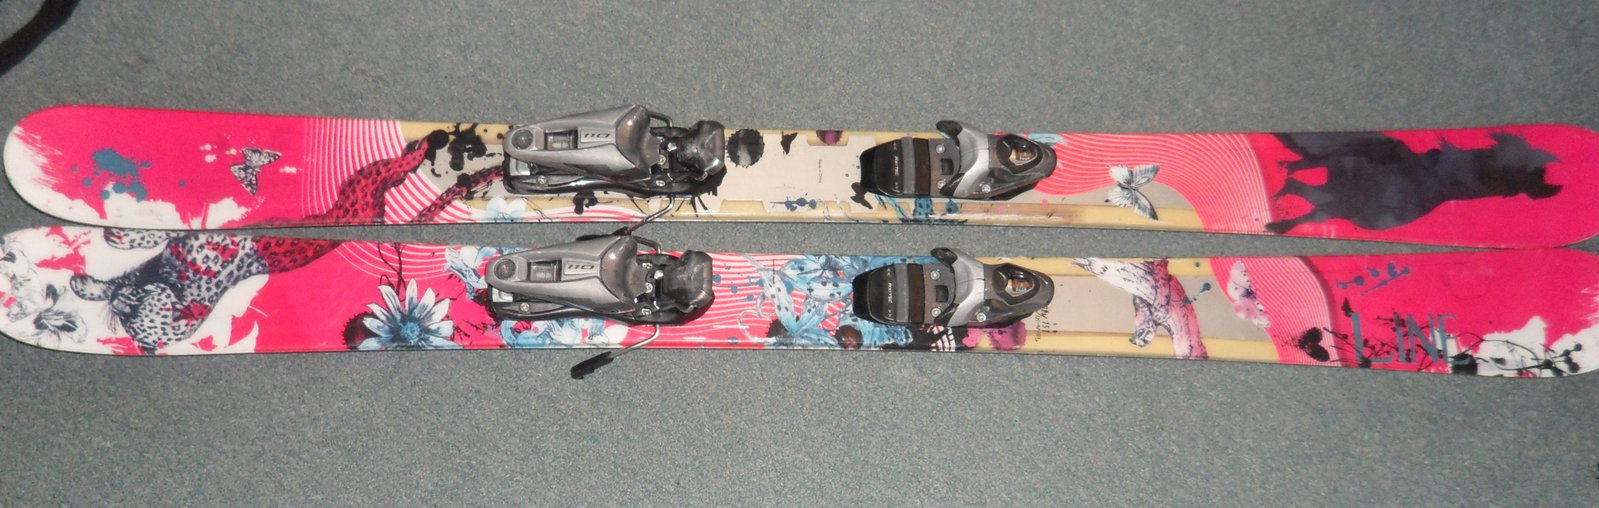 151 LINE Celebrity All Mountain Twin Tip Skis